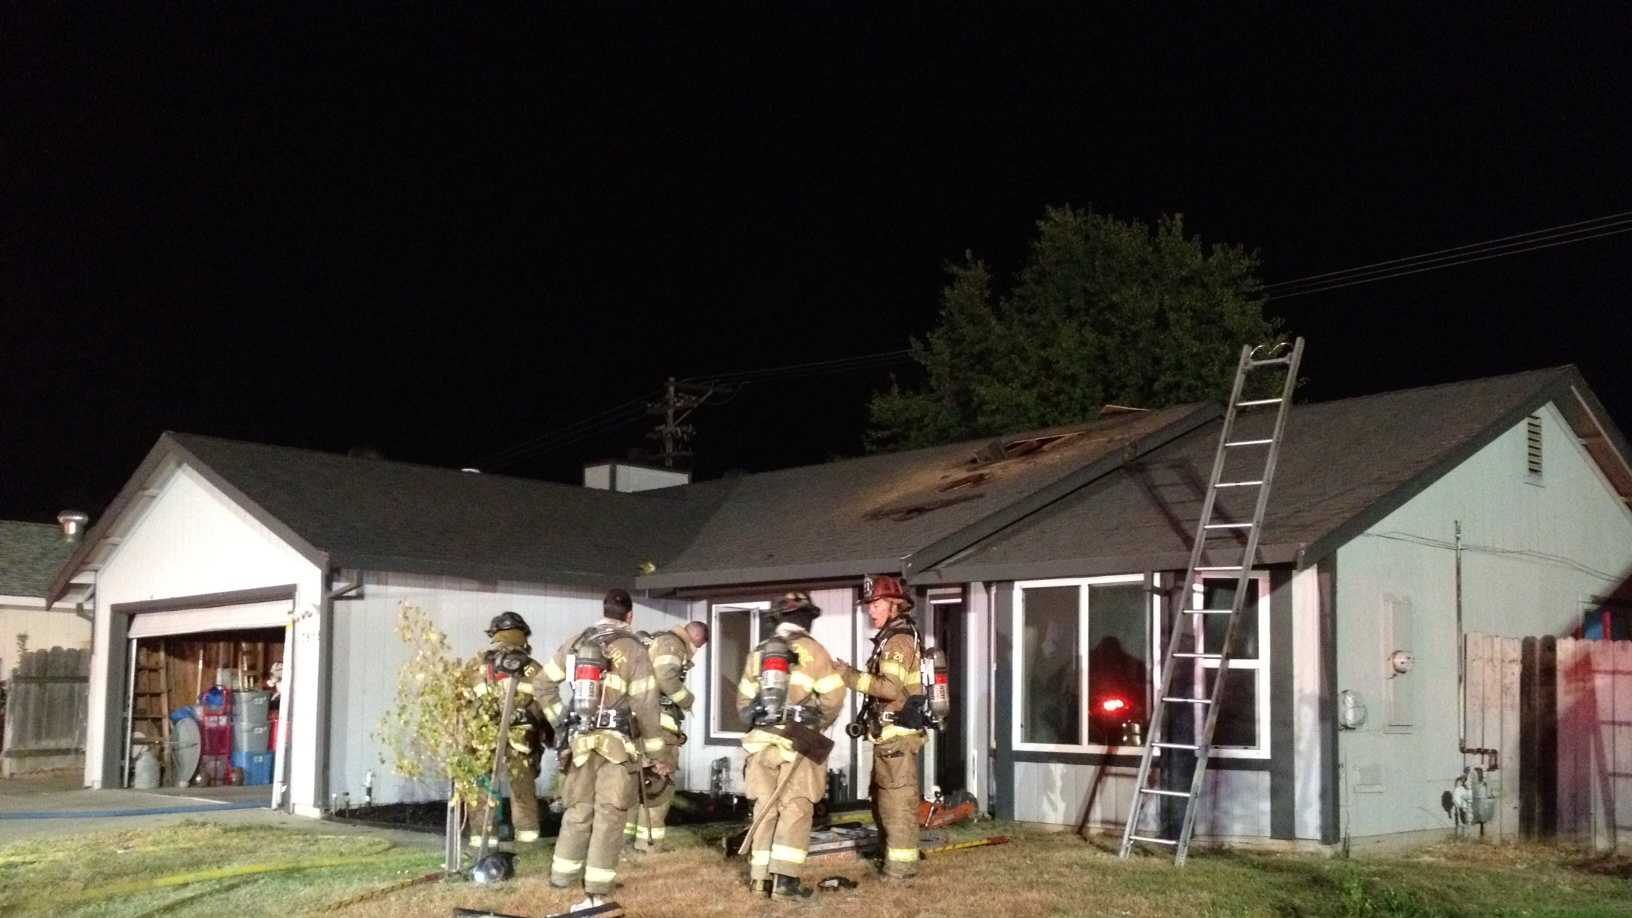 Fire damaged a home on Caber Way in Antelope on Friday.